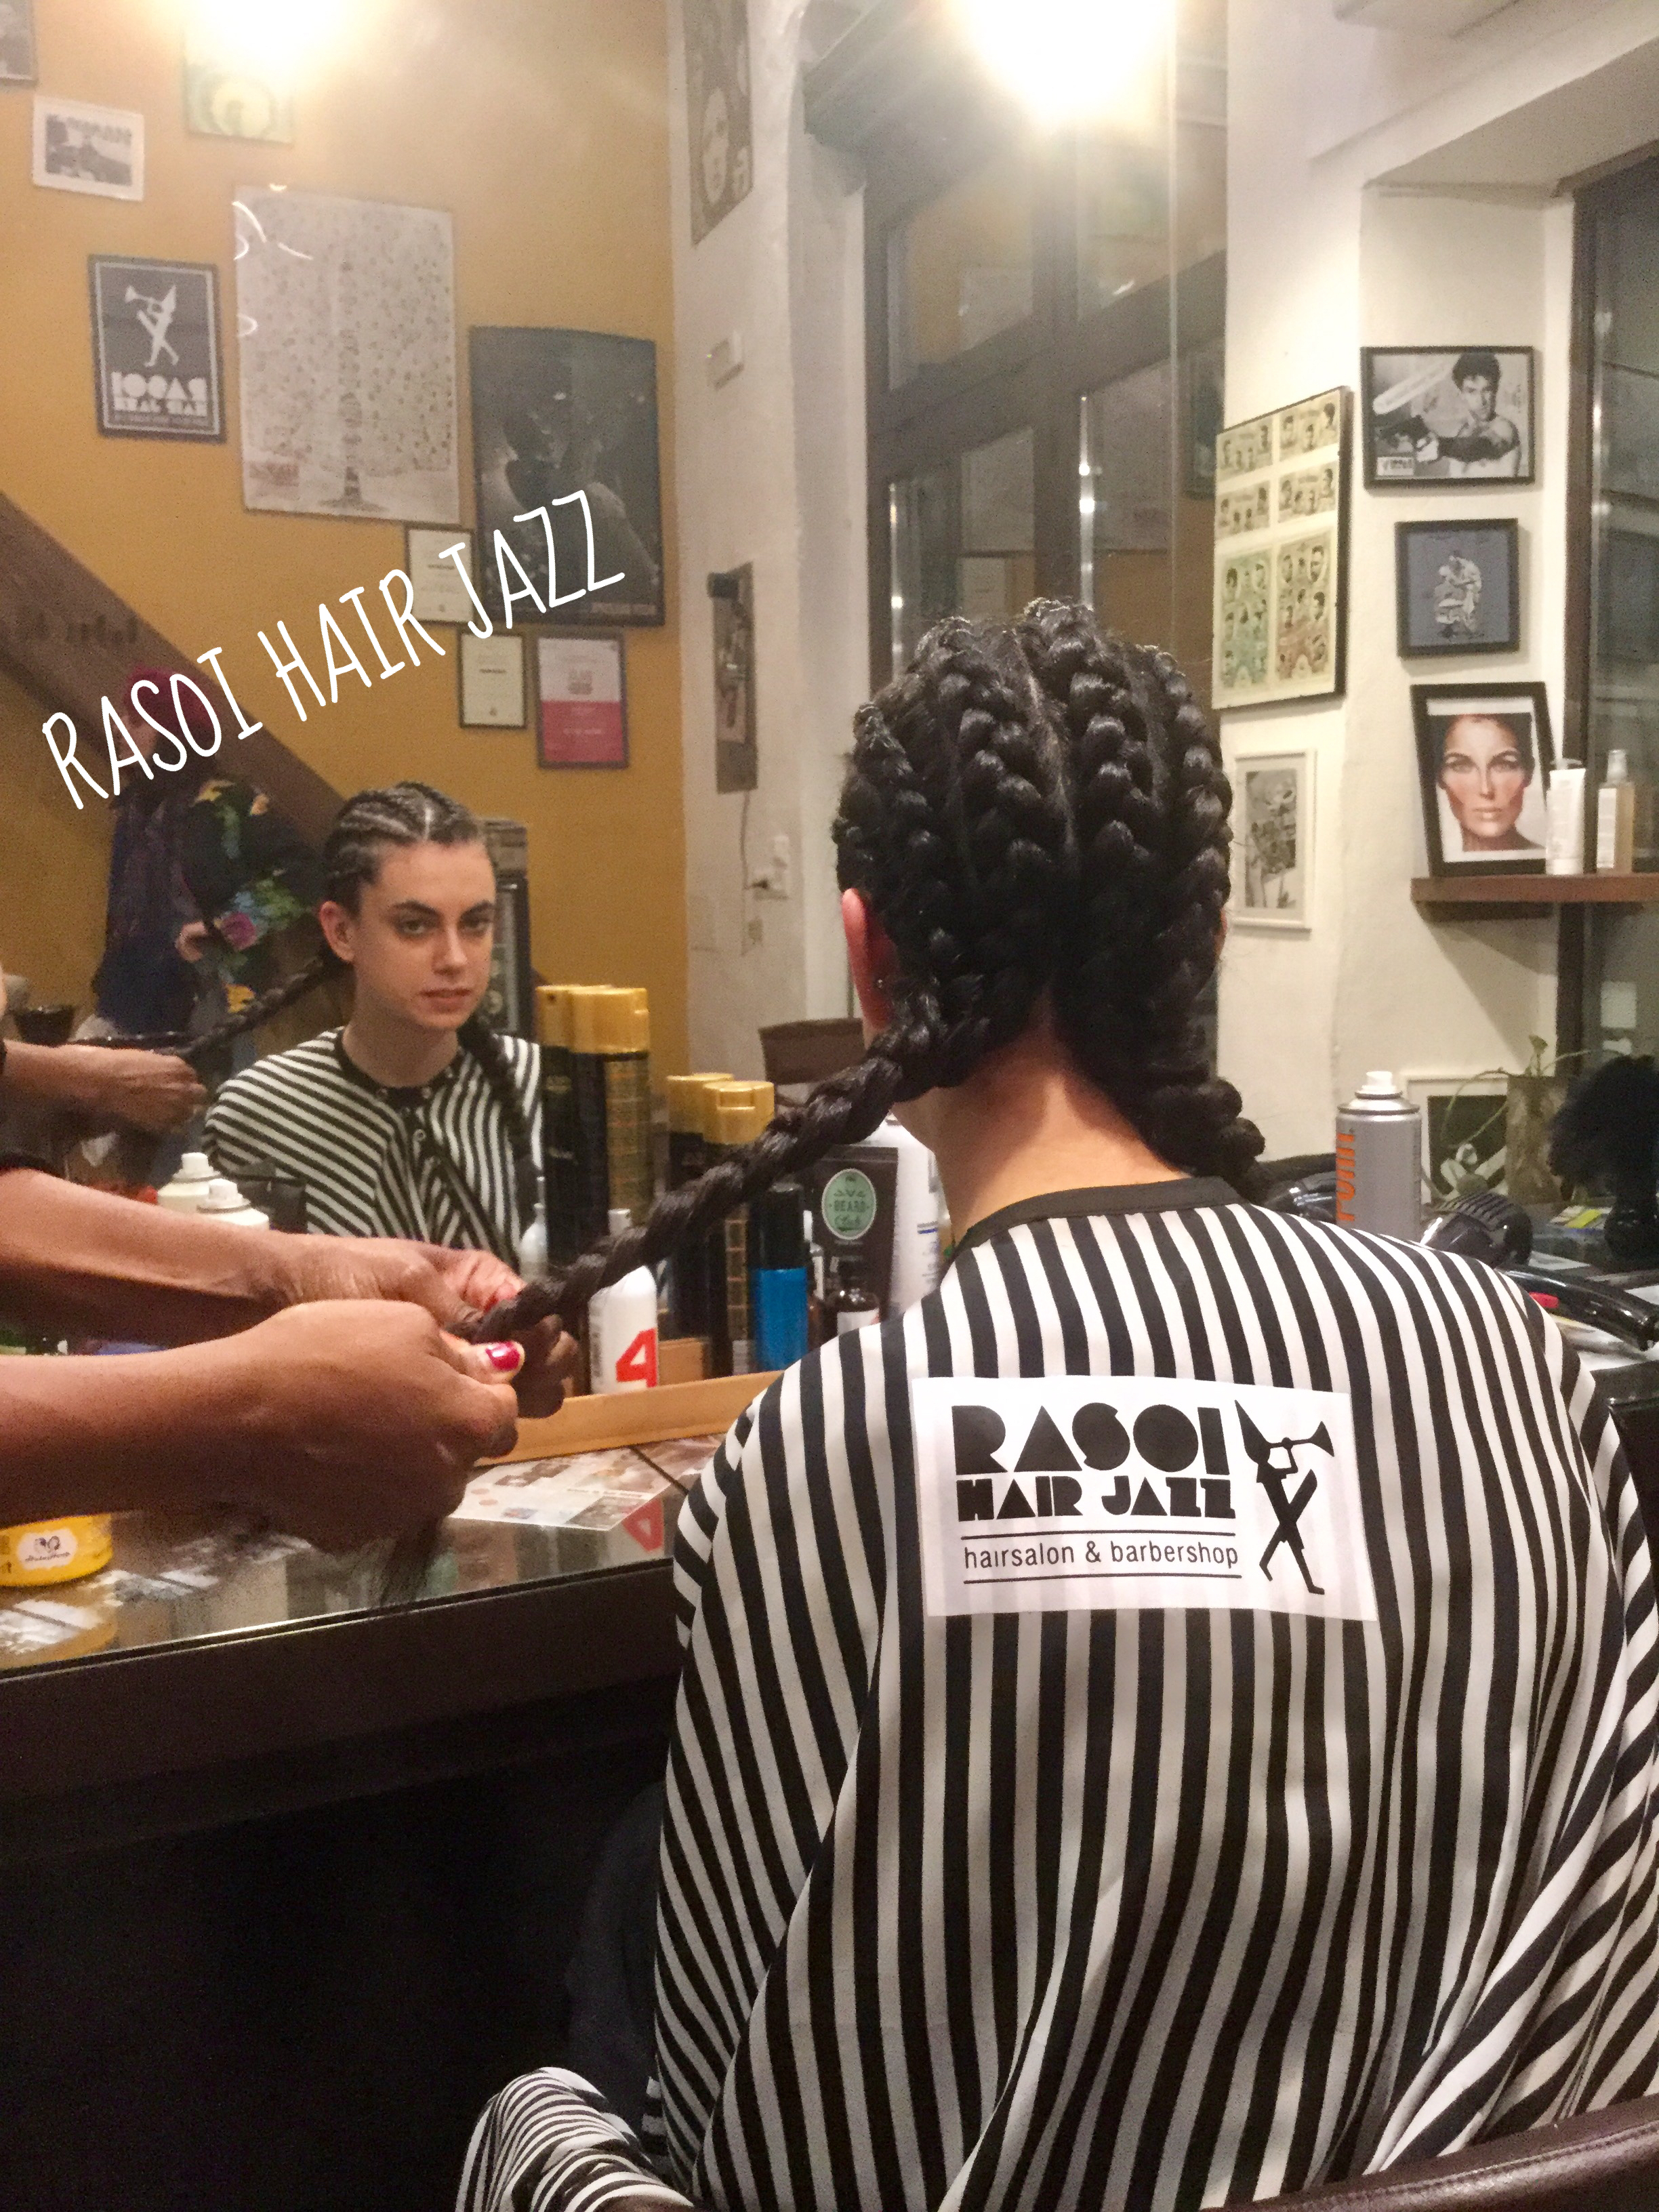 Rasoi Hair Jazz